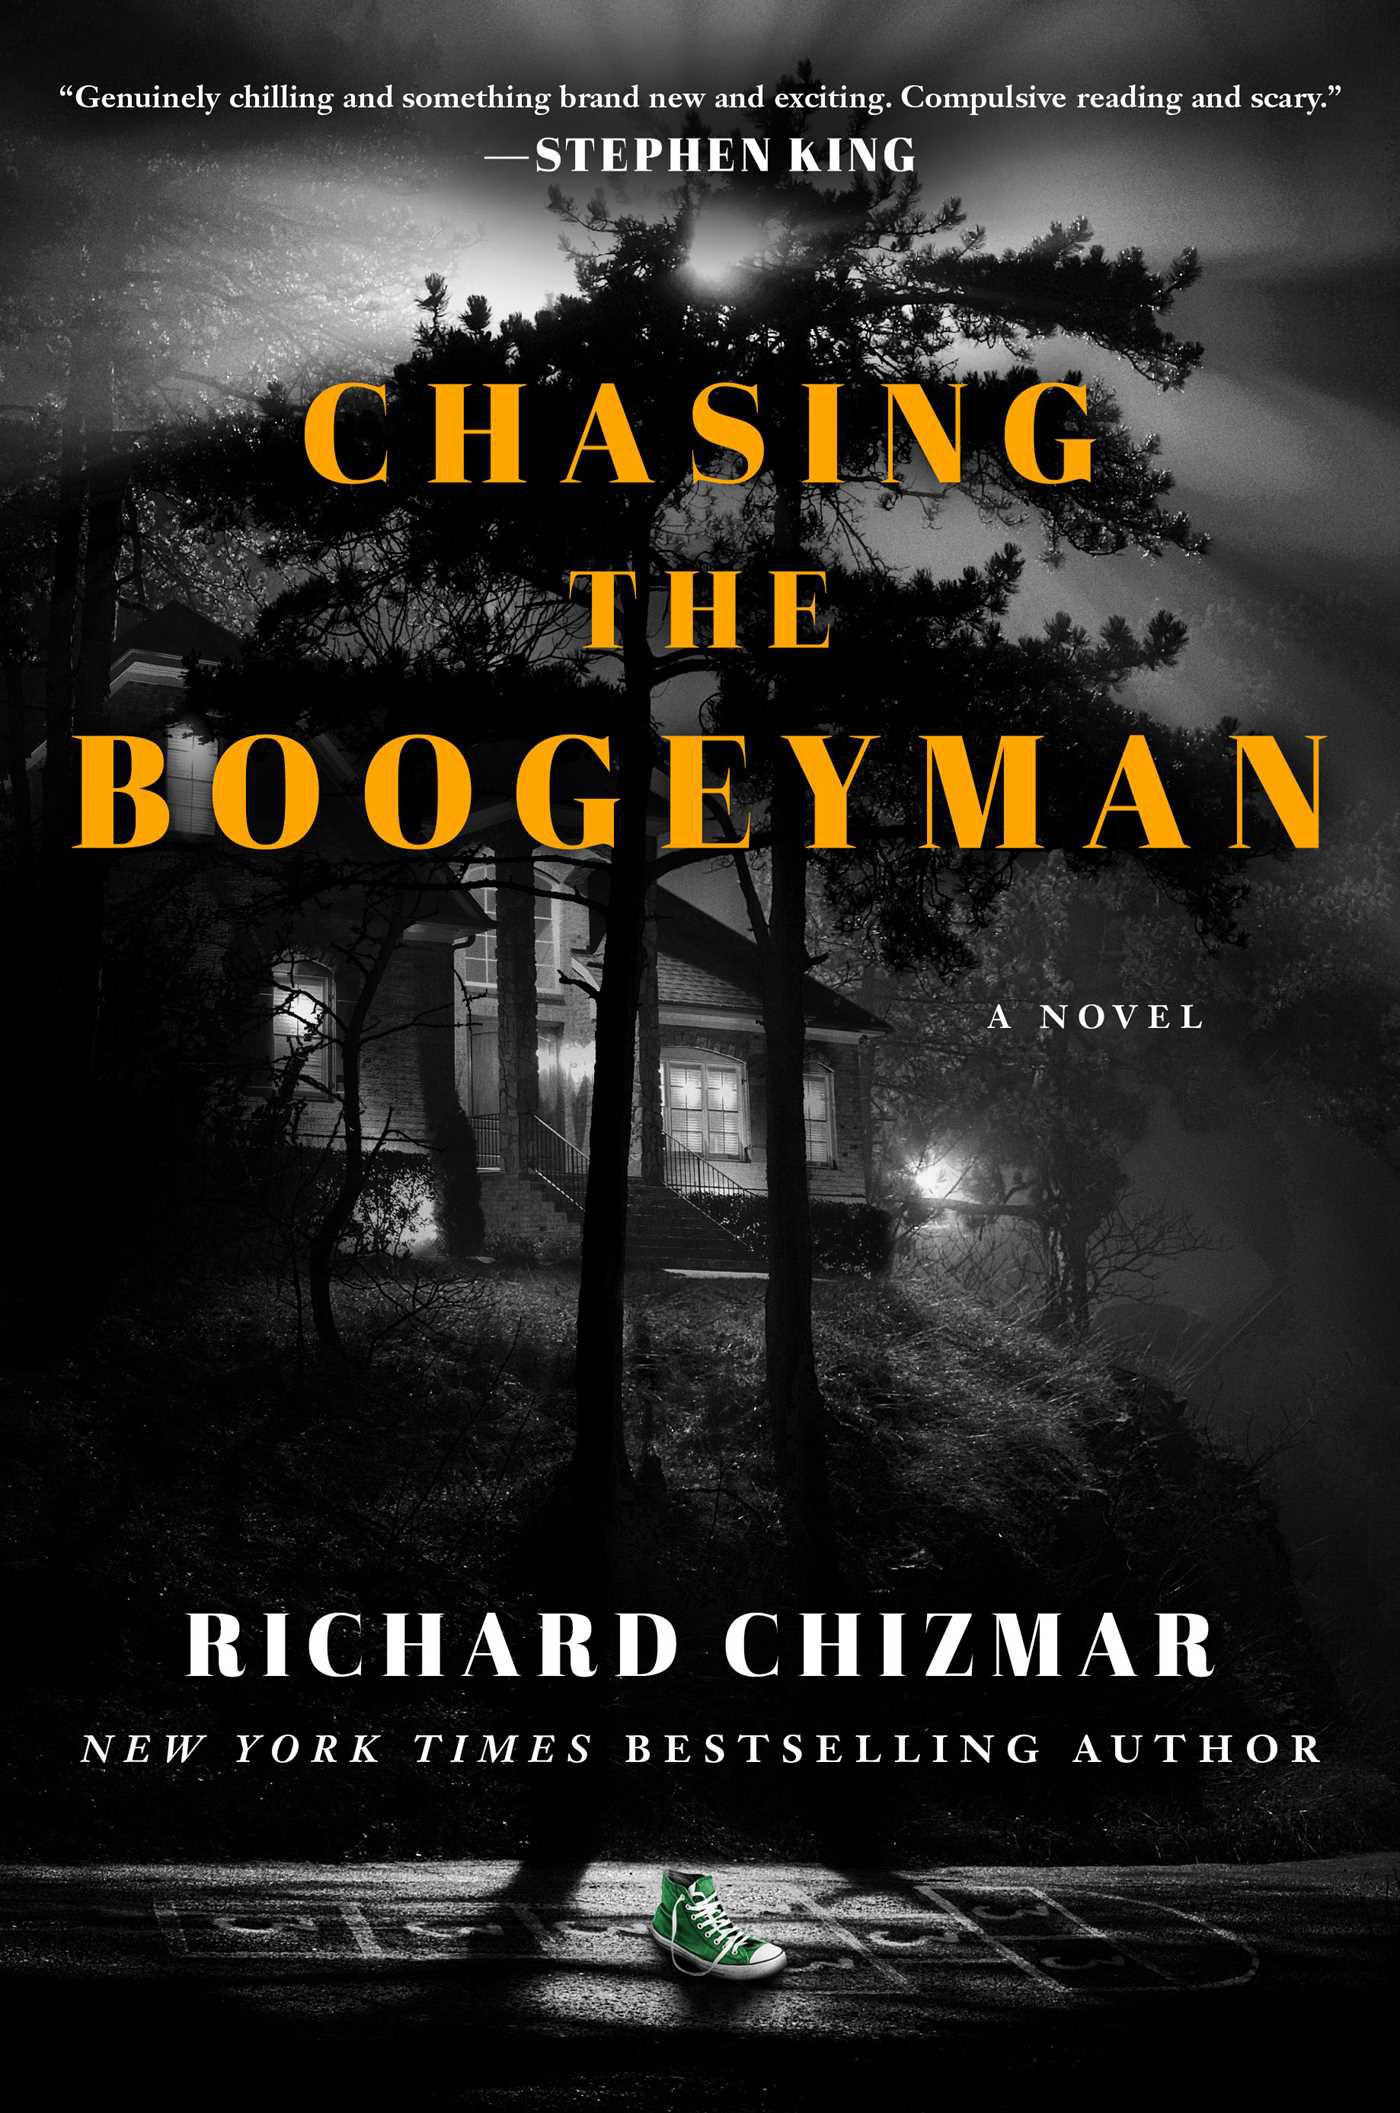 Cover of Chasing the Boogeyman by Richard Chizmar